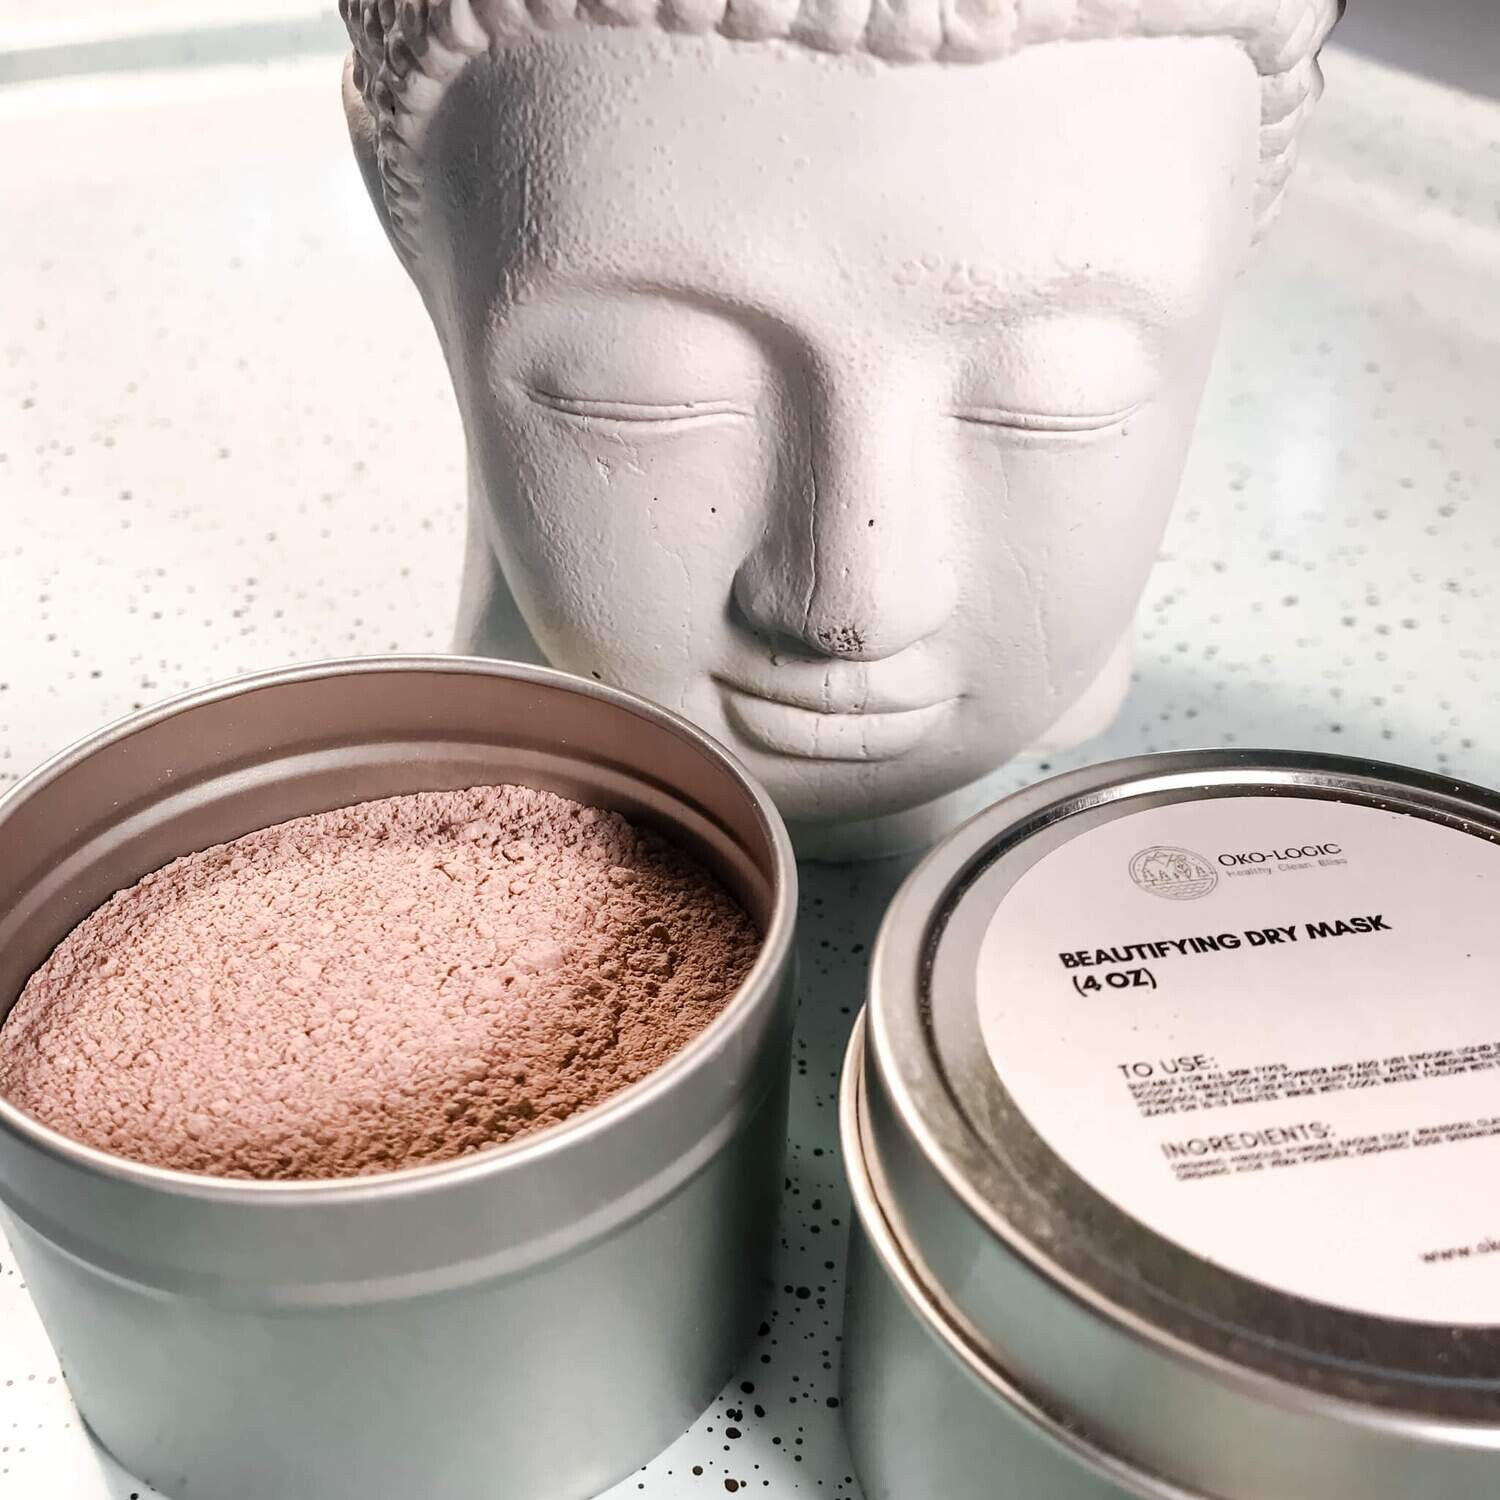 BEAUTIFYING CLAY AND ROSE MASK